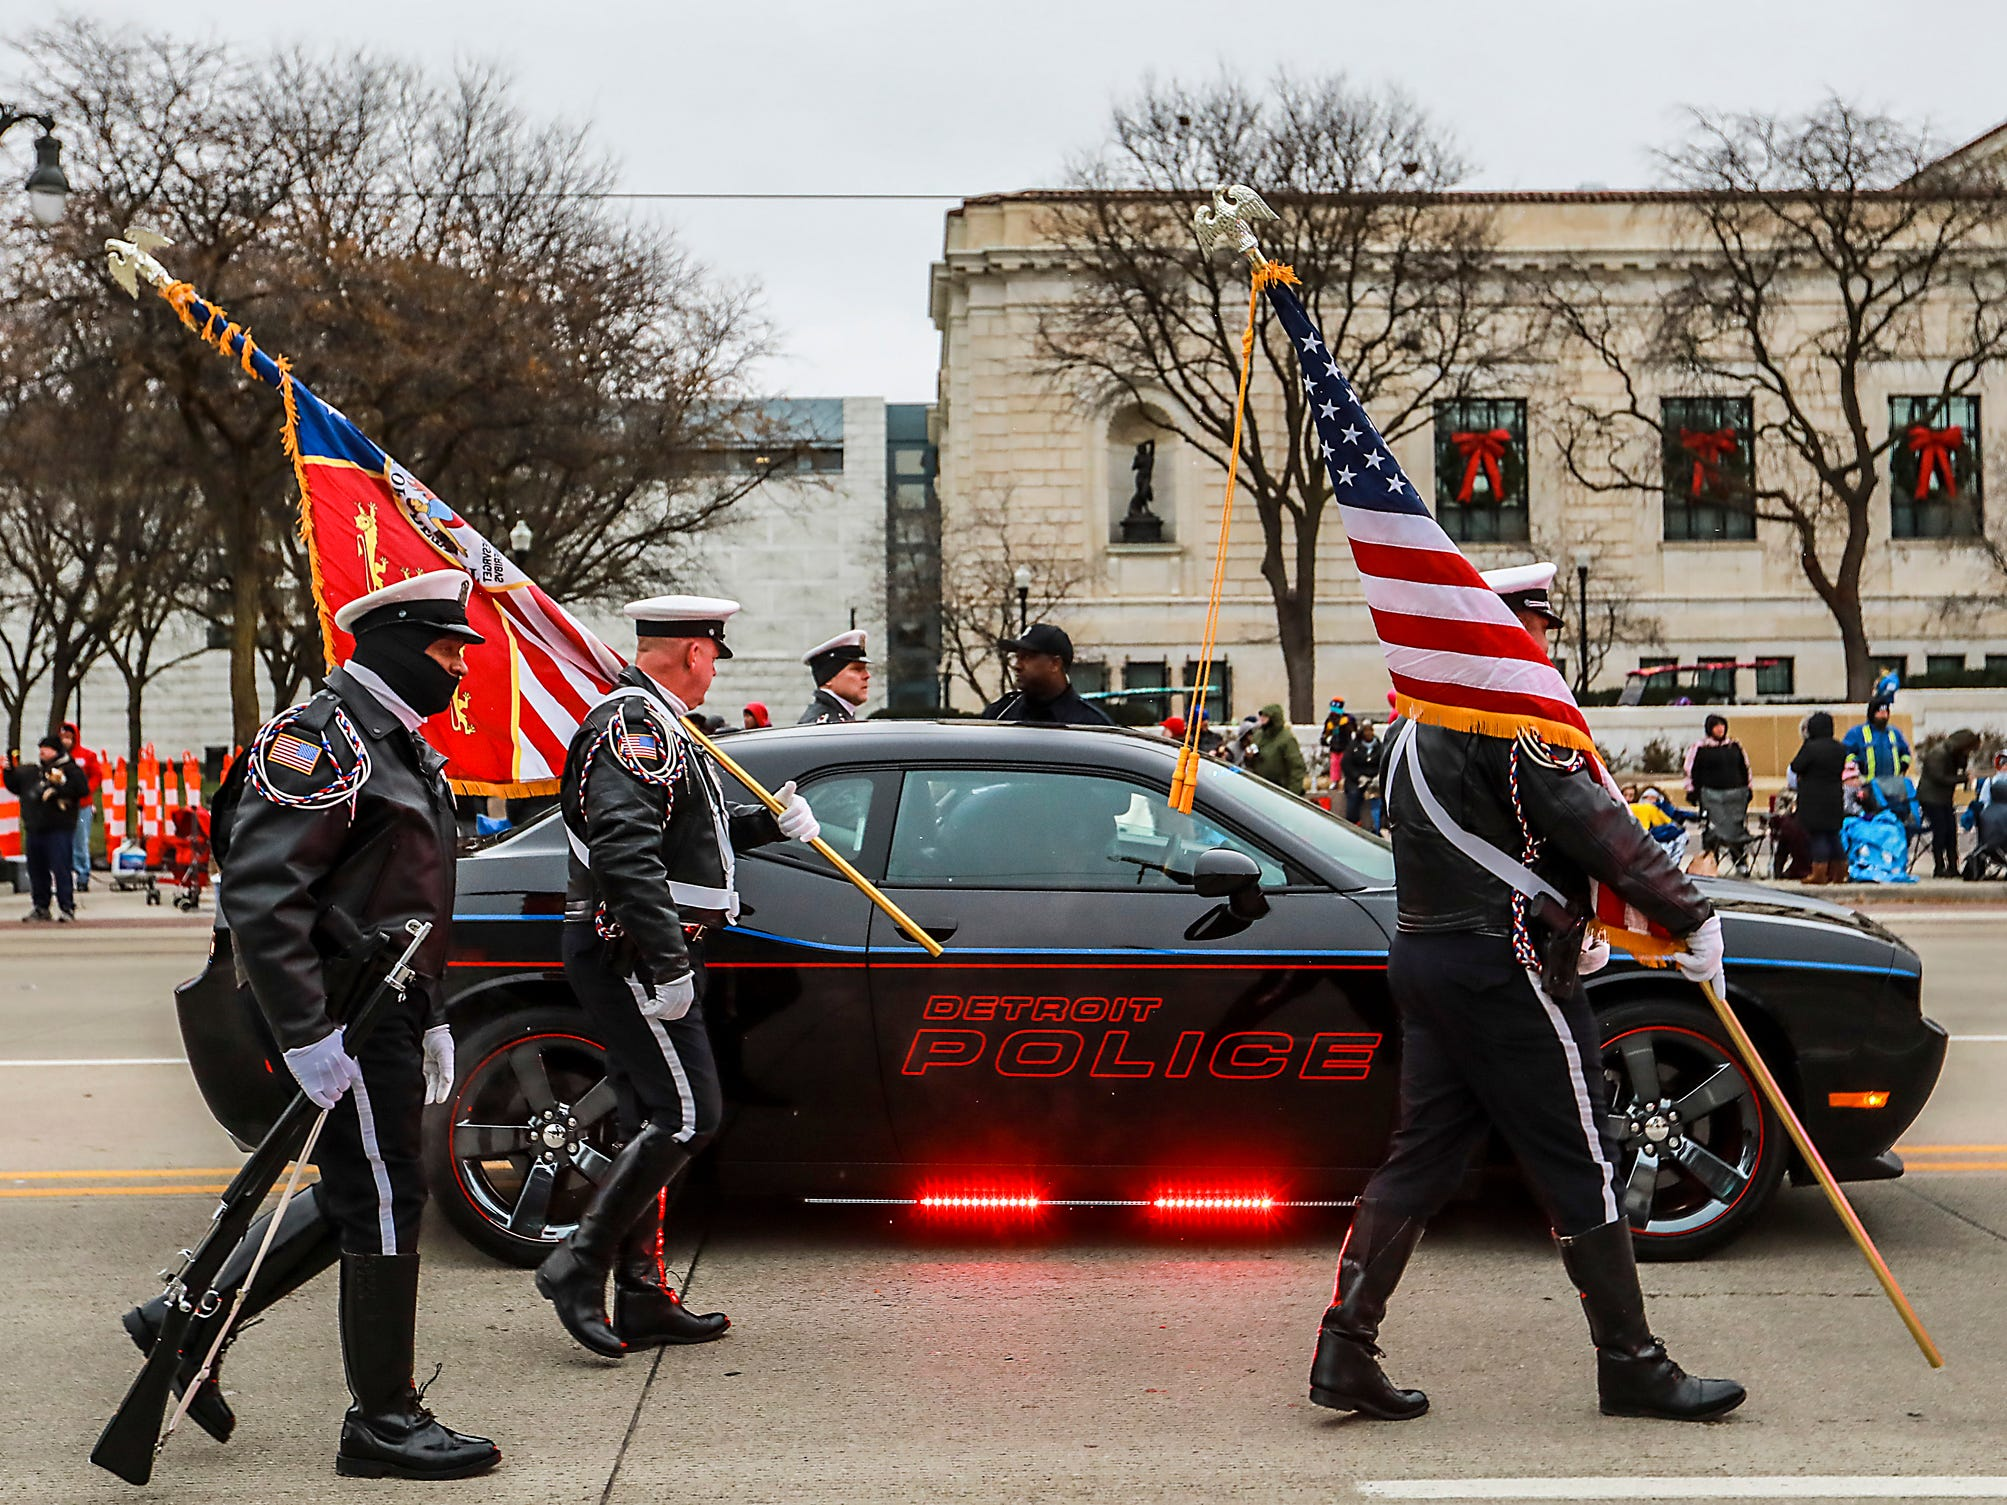 The Detroit Police Color Guard walks to the front to begin America's Thanksgiving Parade in Detroit on Thursday, Nov. 22, 2018.